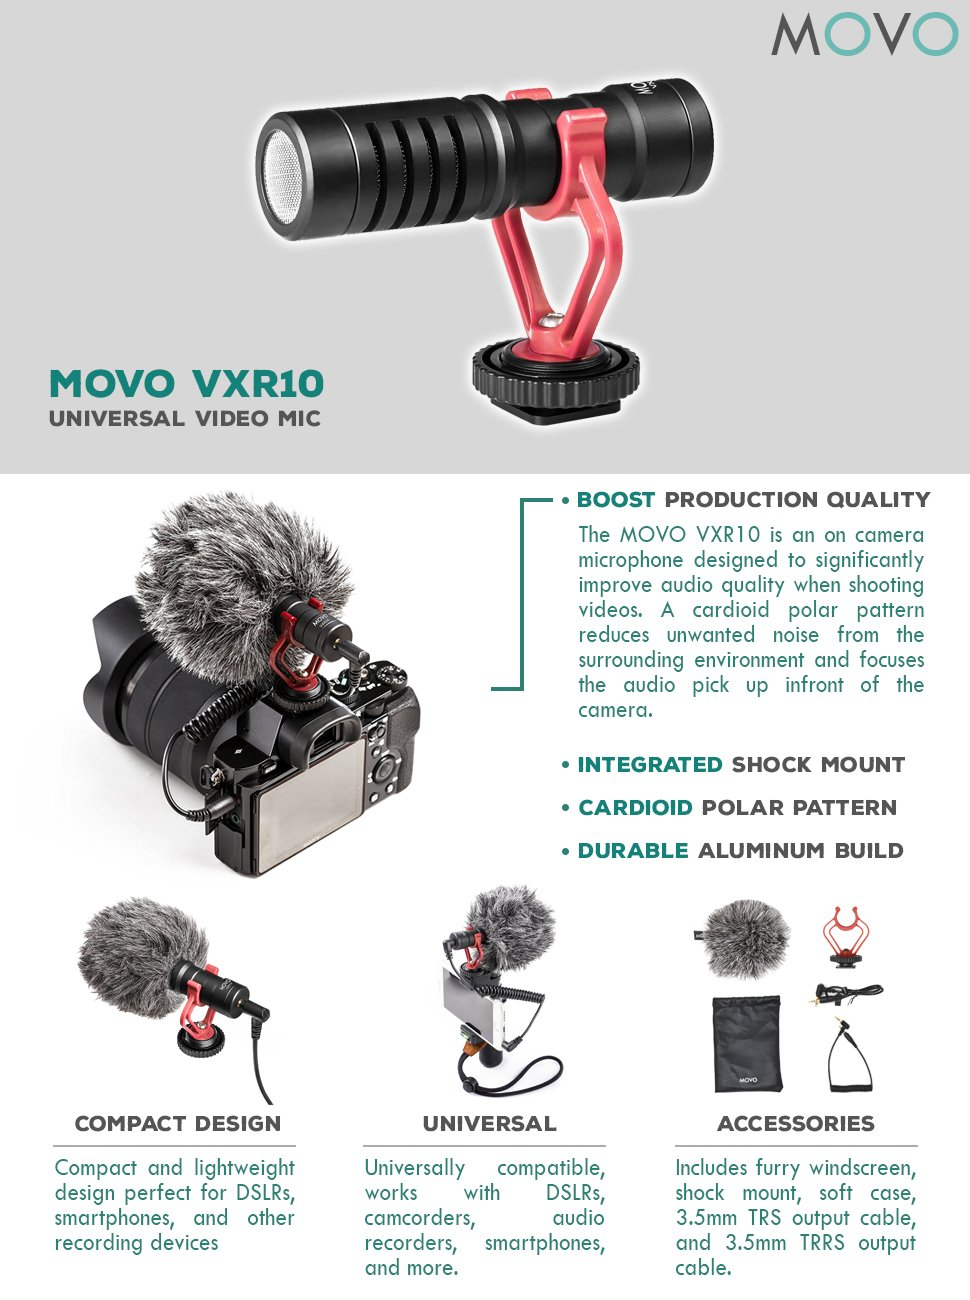 Deadcat Windscreen Movo VXR10 Universal Video Microphone With Shock Mount For